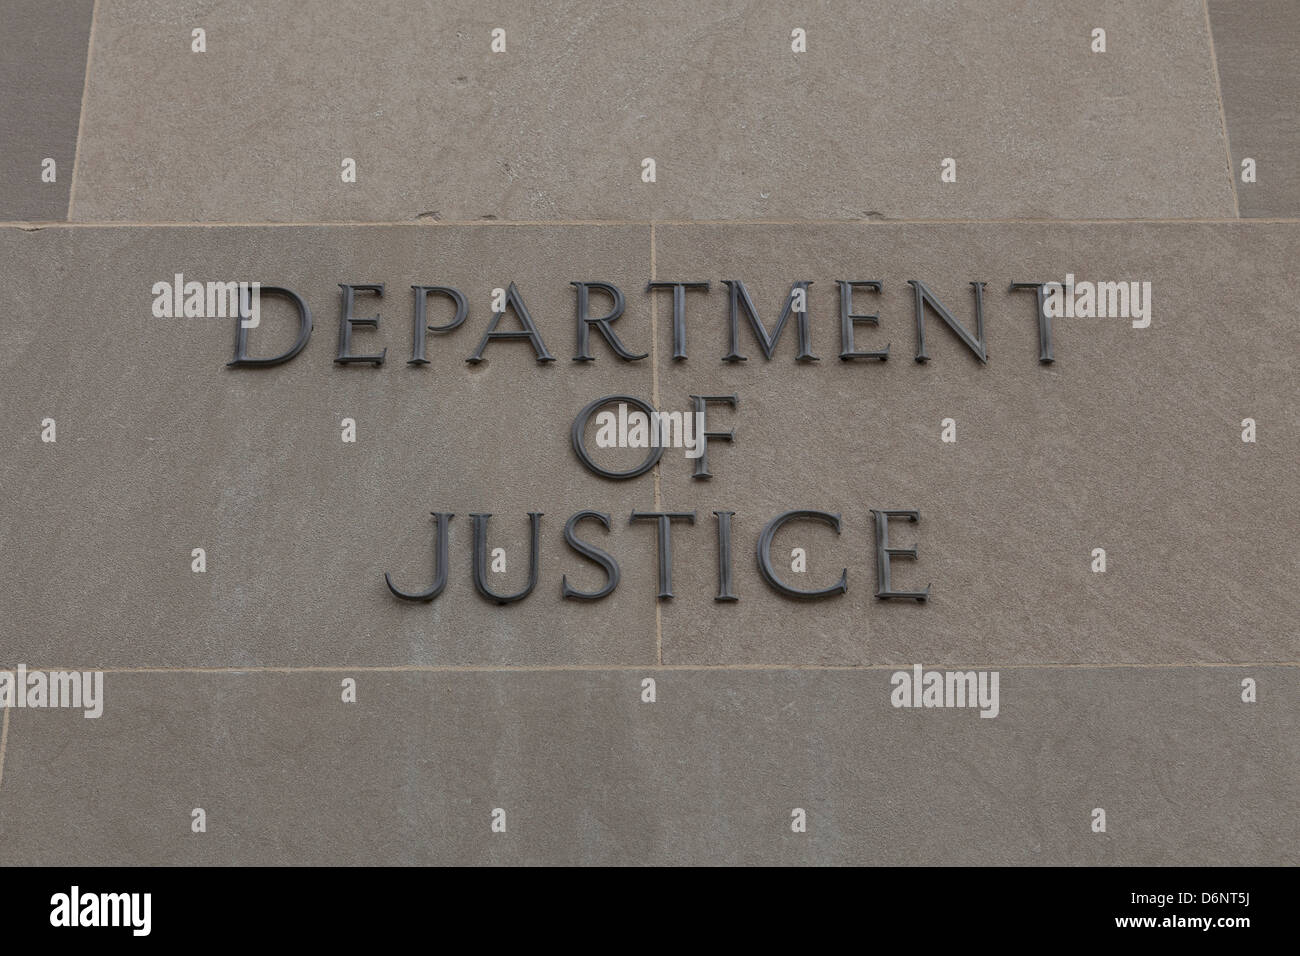 Department of Justice building, Washington DC - Stock Image